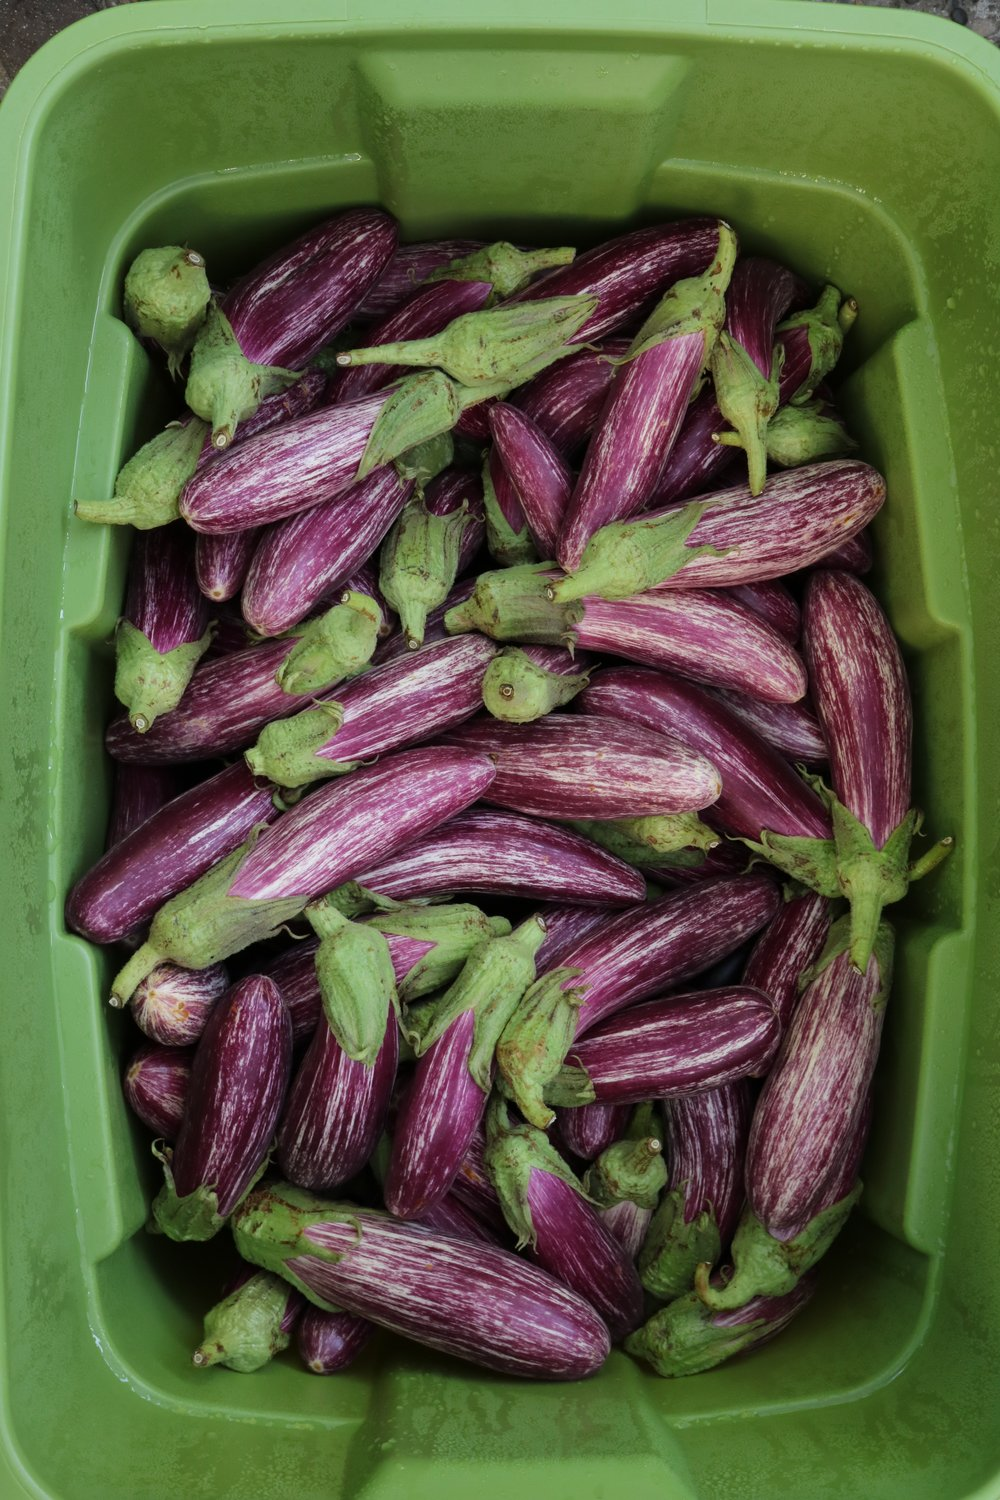 Greek Eggplant from    Square Peg Farm